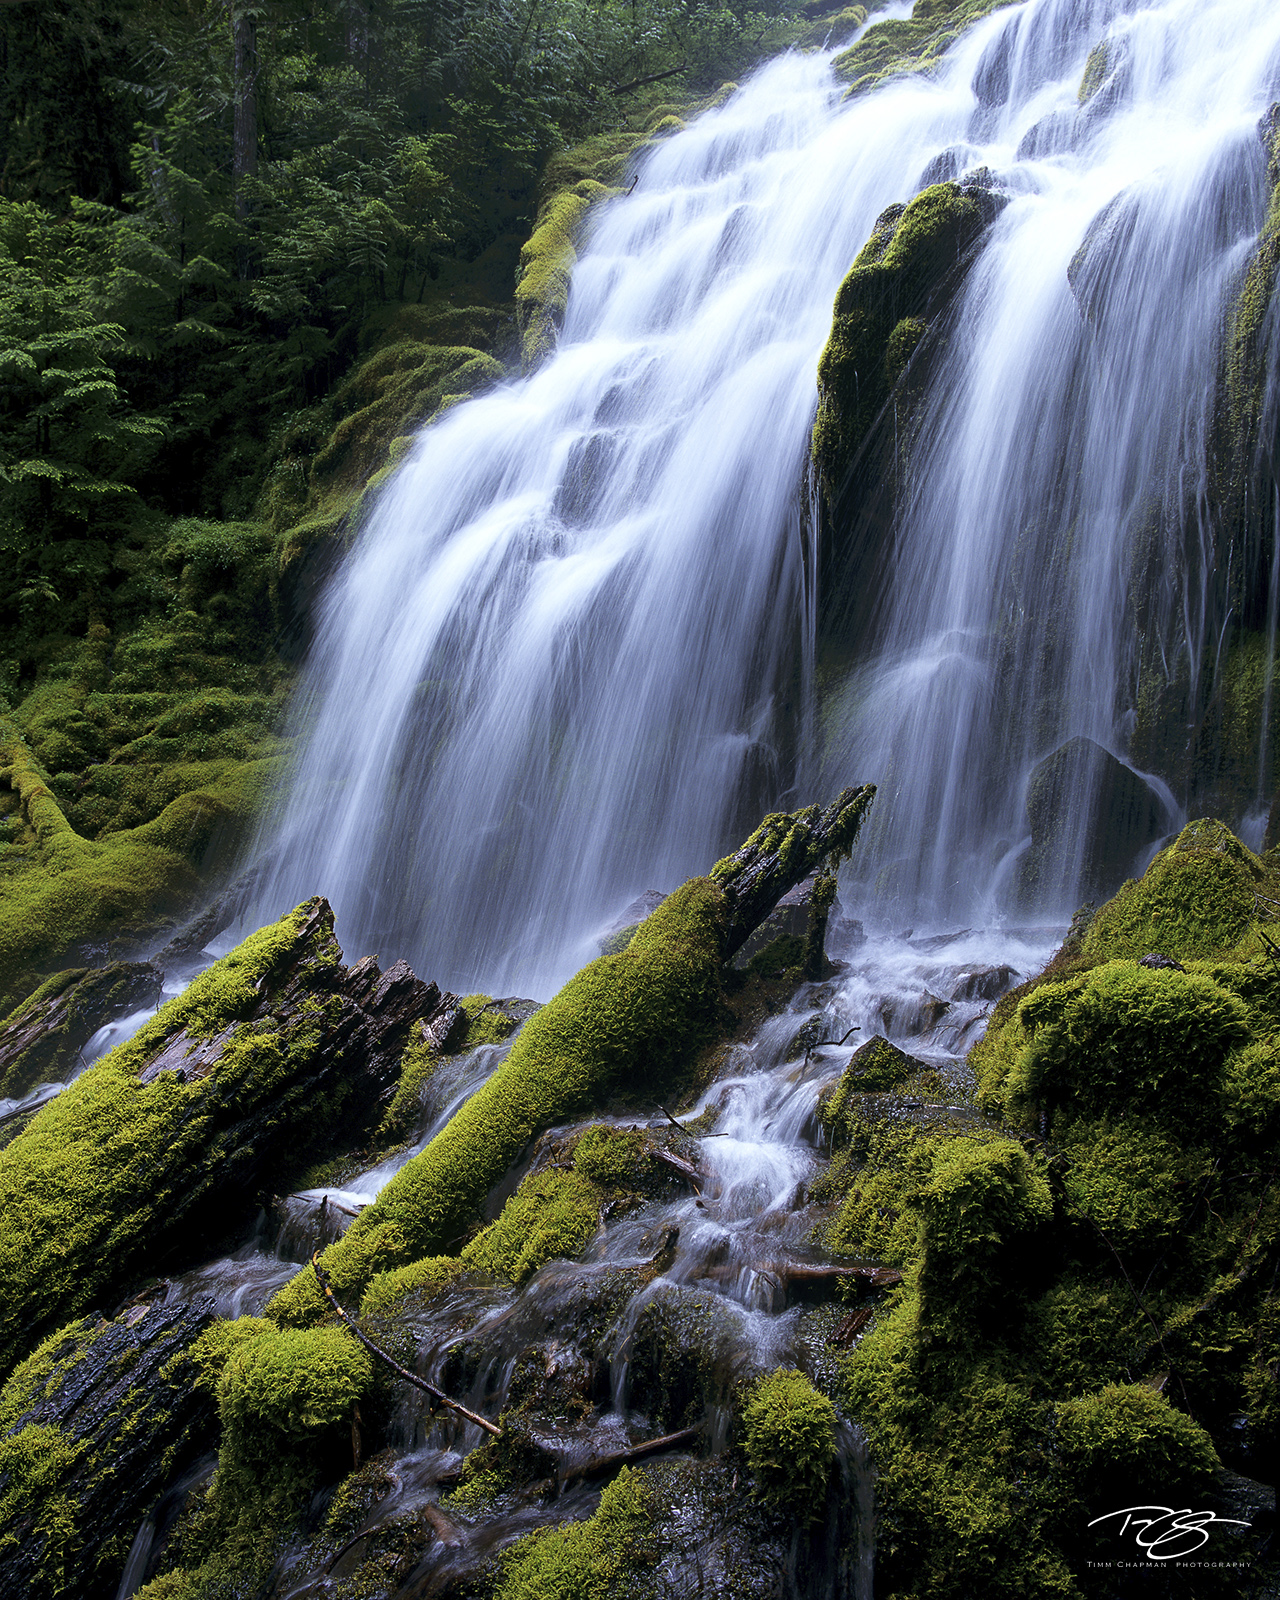 Much of Oregon's Willamette National Forest is rainforest; abundant precipitation and waterfalls feed the forest and produce...